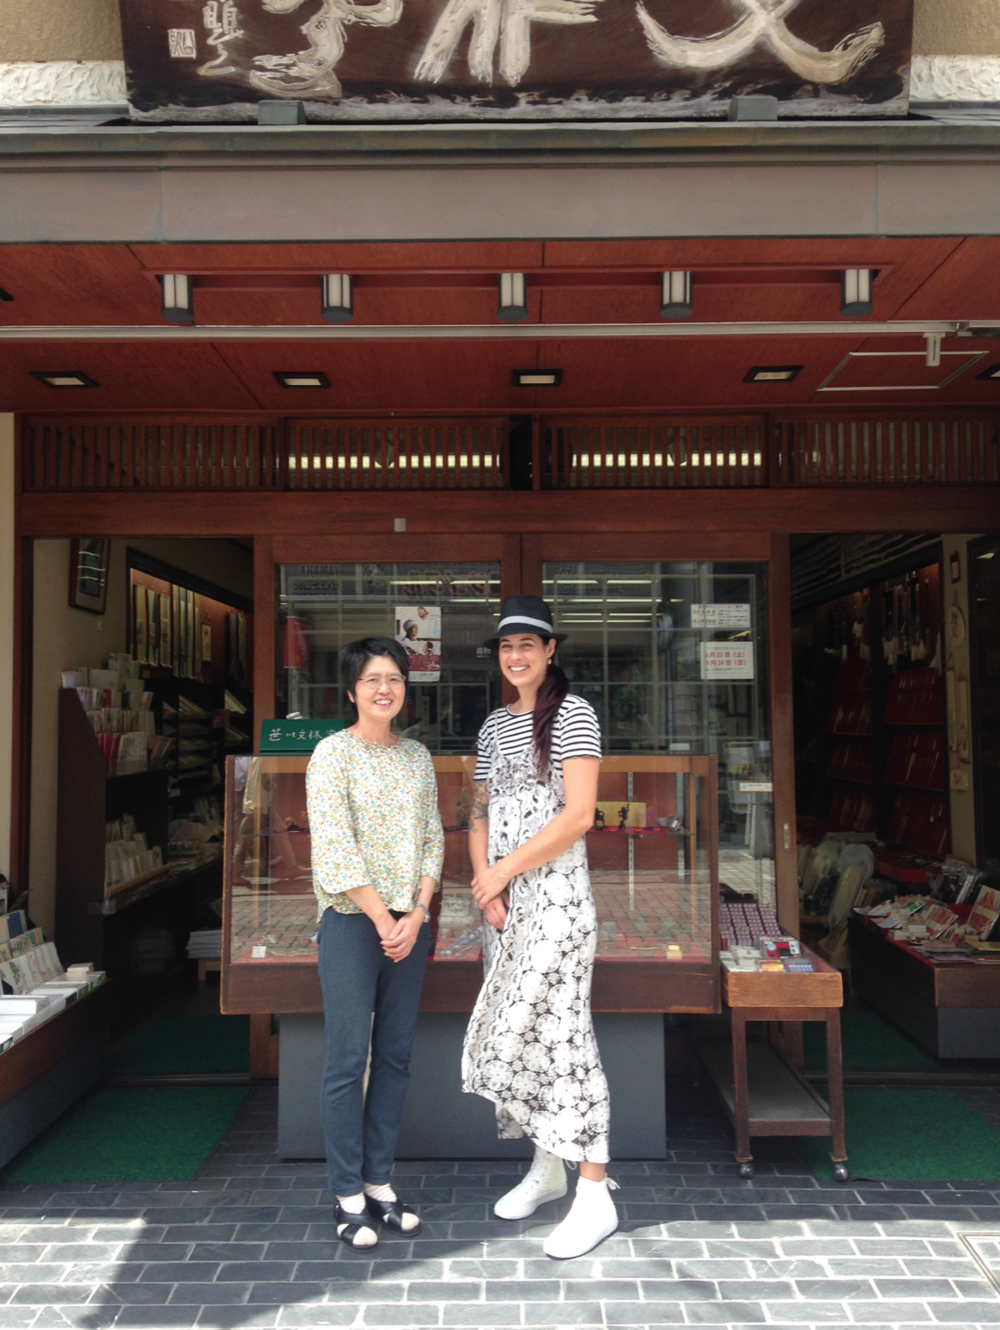 Sasakawa Bunrindo- One of the oldest Shodo (Japanese Calligraphy) shops in Japan.